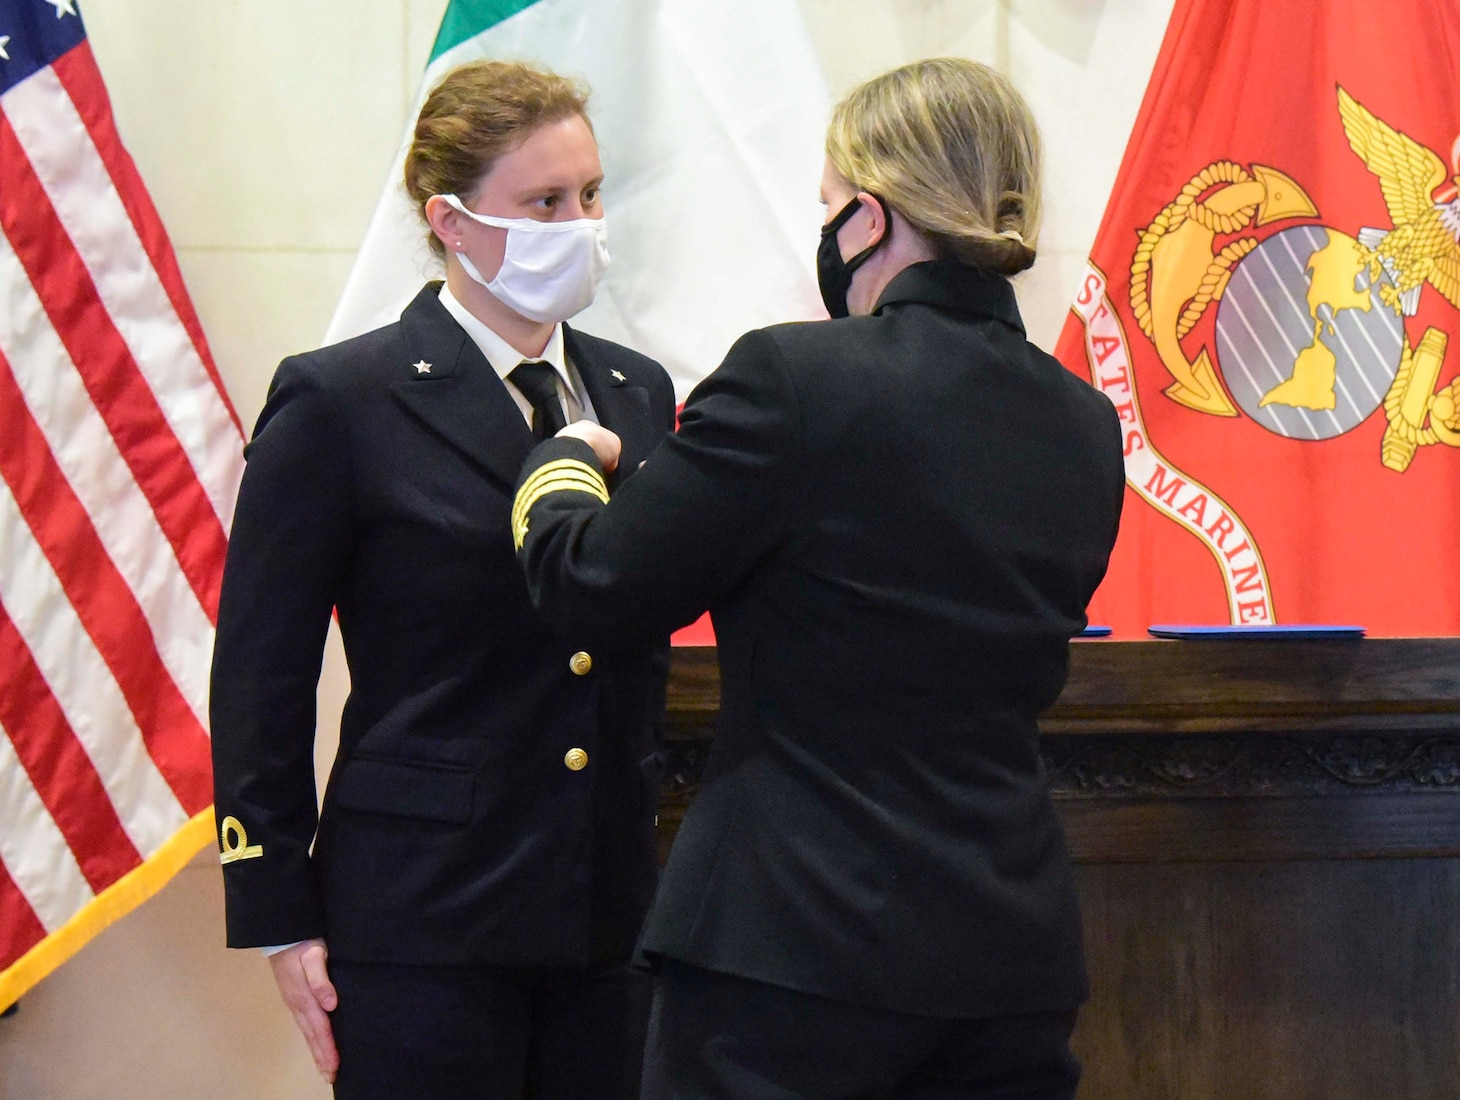 Training Squadron (VT) 9 Commanding Officer Cmdr. Meghan Angermann, right, pins naval aviator Wings of Gold on Italian navy Ensign Erika Raballo during a ceremony at Naval Air Station Meridian base chapel on March 11, 2021.